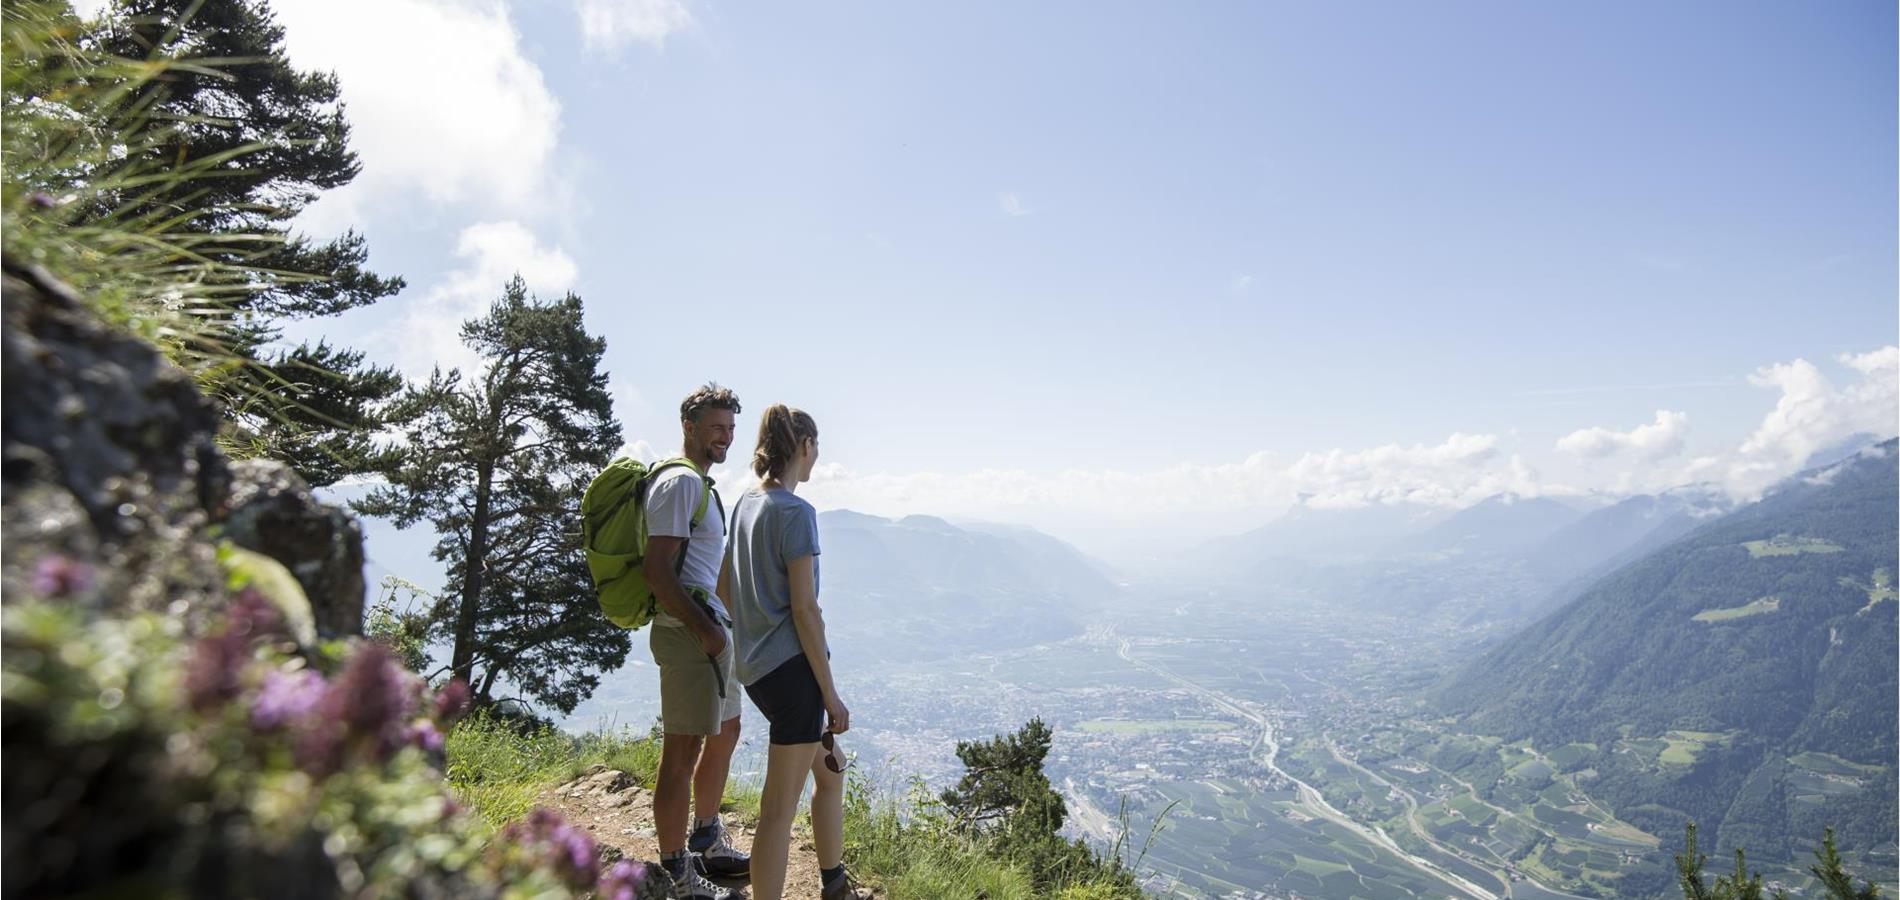 Outdoor Holidays in Nalles, South Tyrol